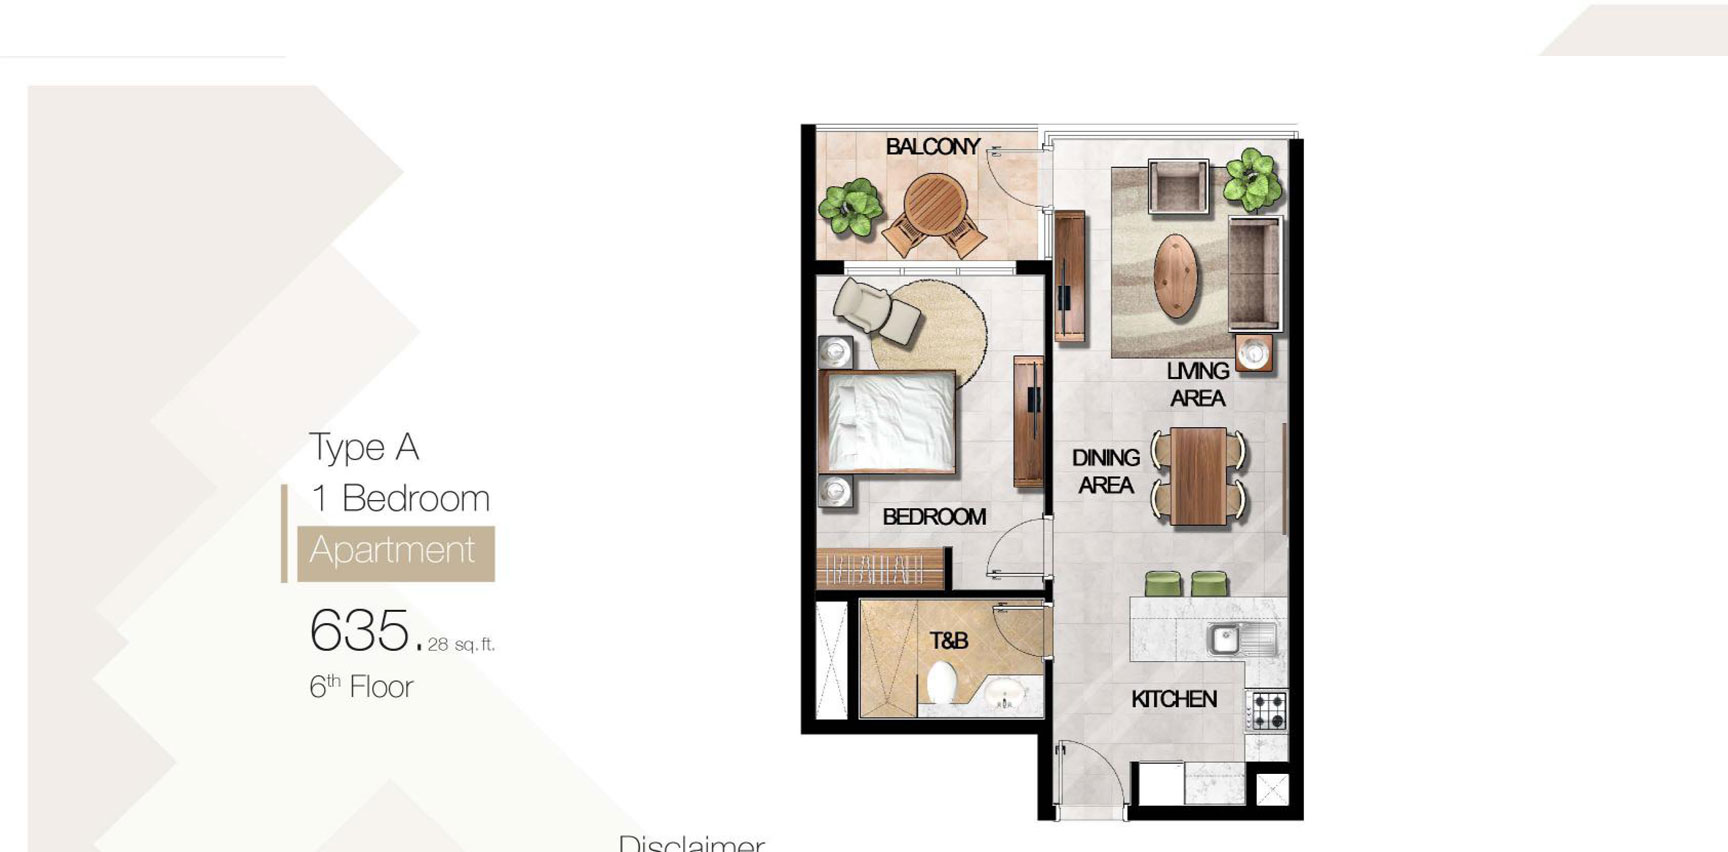 1 Bedroom Type A Size 635.28 sq.ft